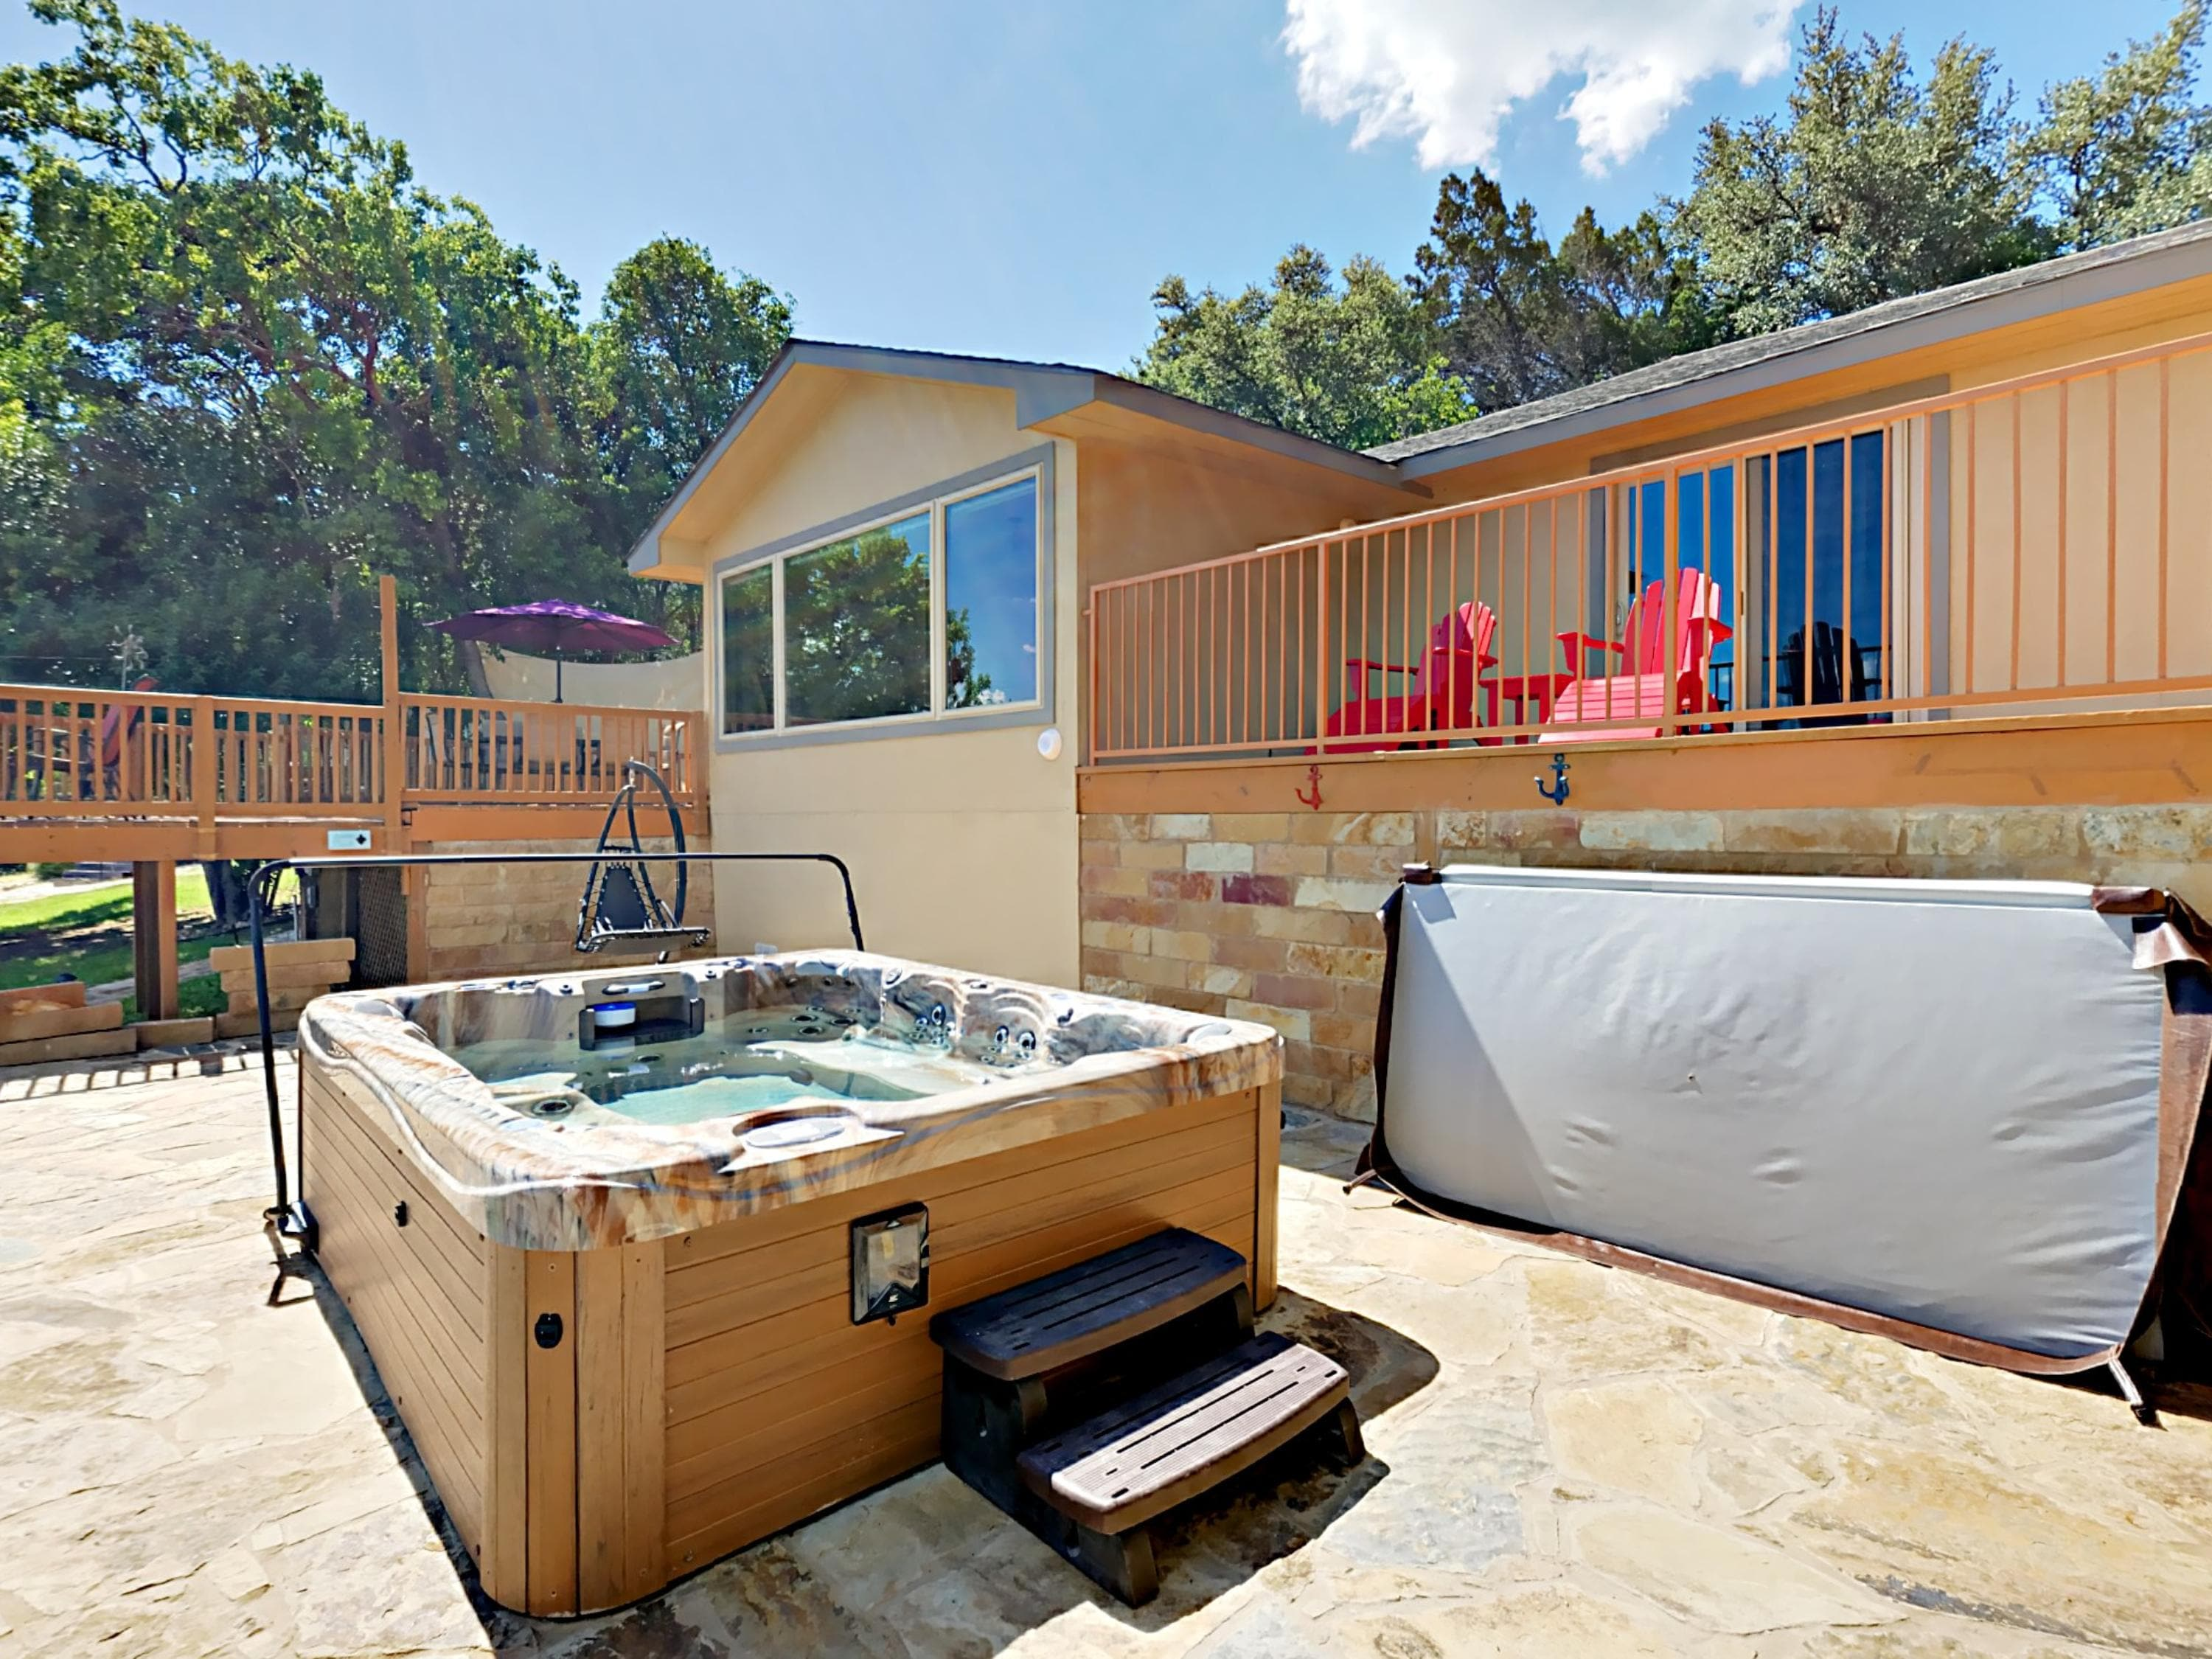 Relax in the bubbling hot tub right outside.